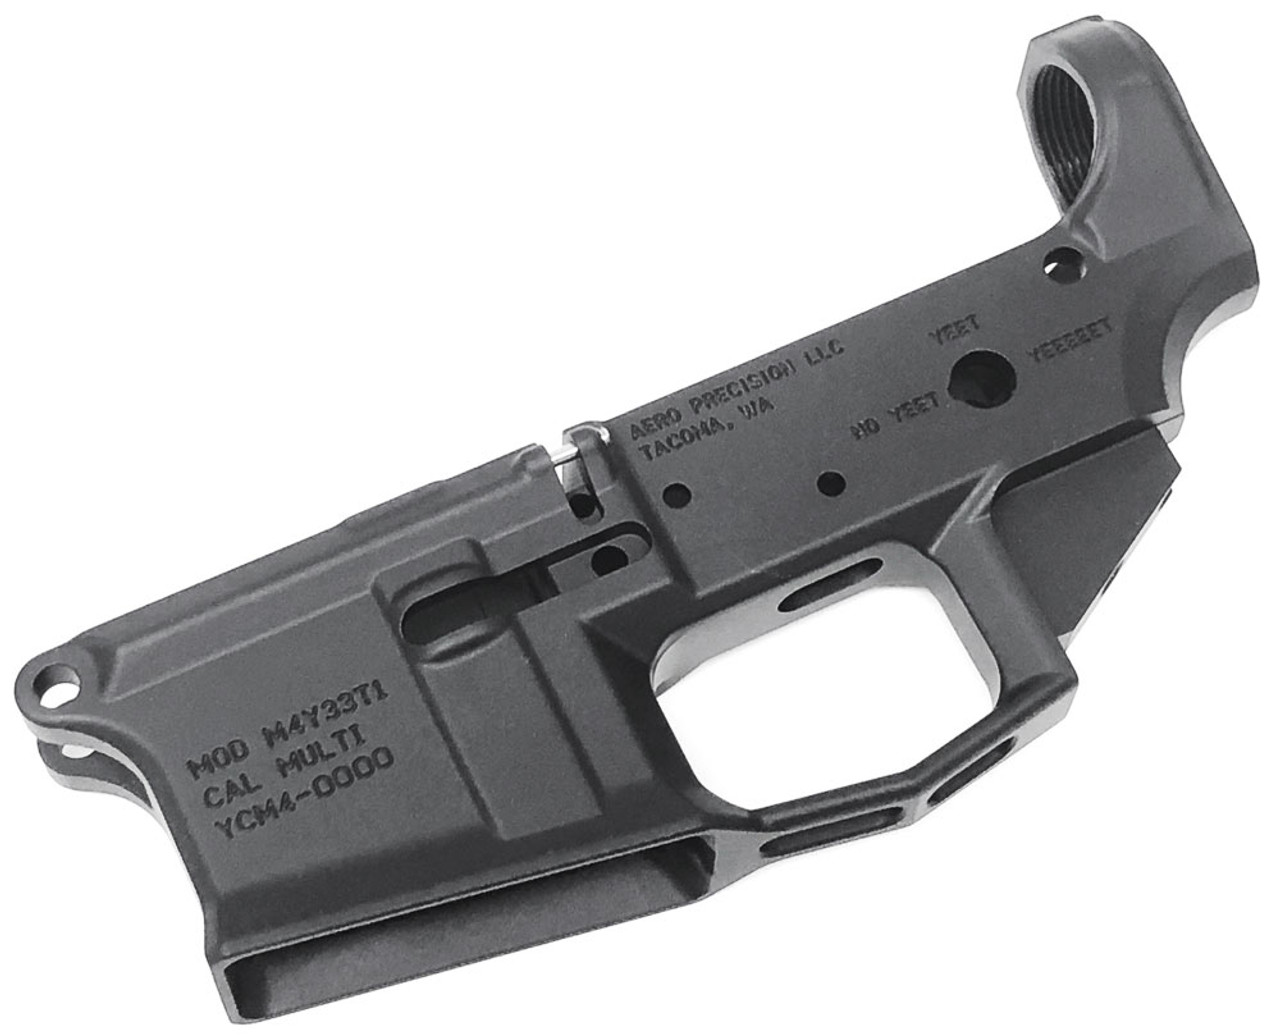 Aero Precision M4e1 Stripped Ar15 Lower Receiver Yeet Cannon For Sale In Stock Surplus Ammo Responding to the demand for them to yeet up, they are releasing a yeet cannon g1 version of. aero precision m4e1 yeet cannon stripped ar15 lower receiver